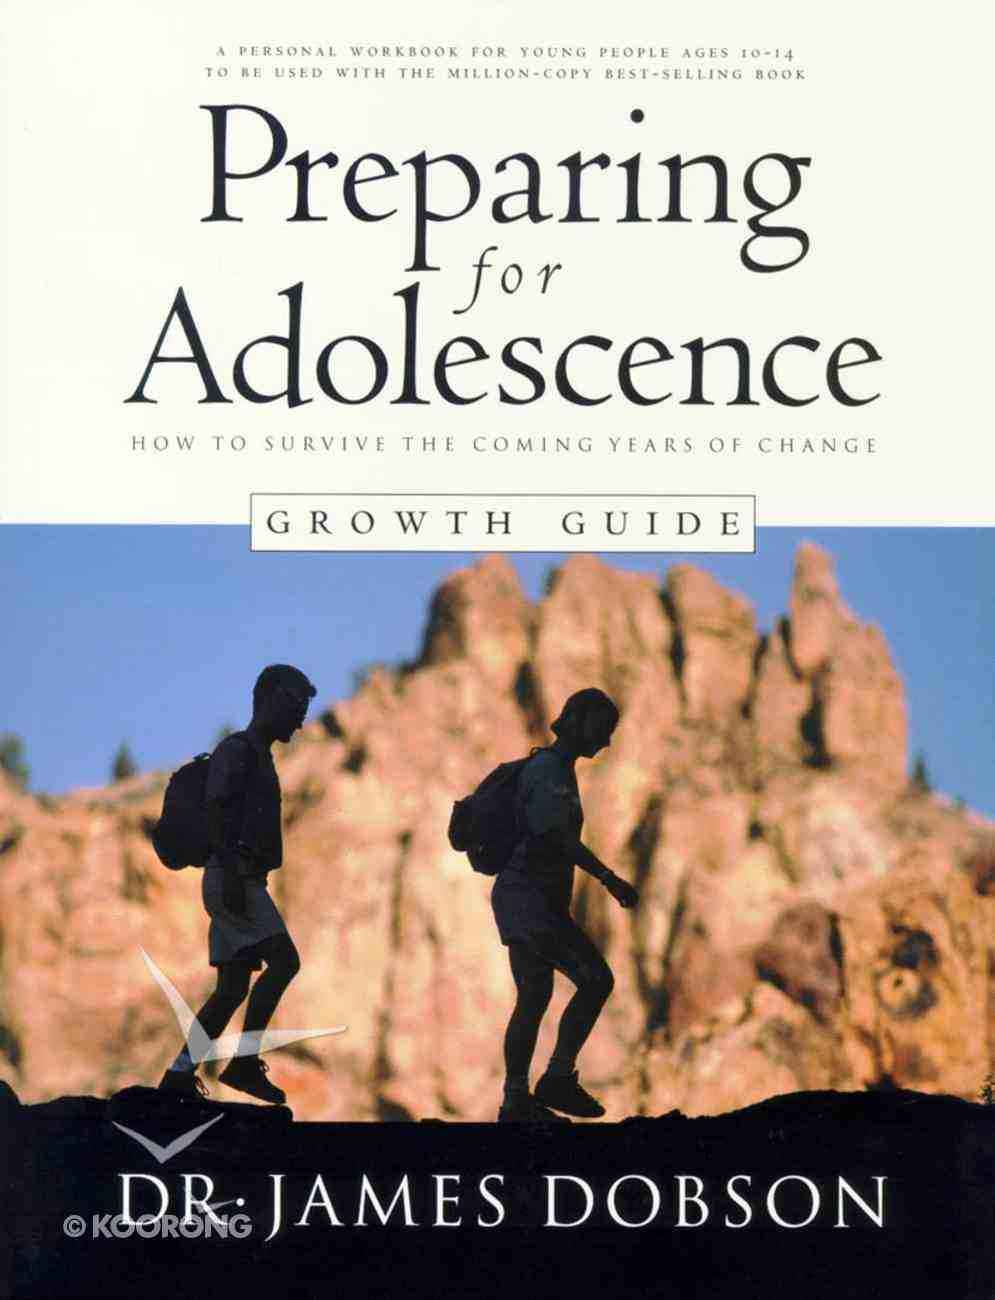 Preparing For Adolescence (Growth Guide) Paperback